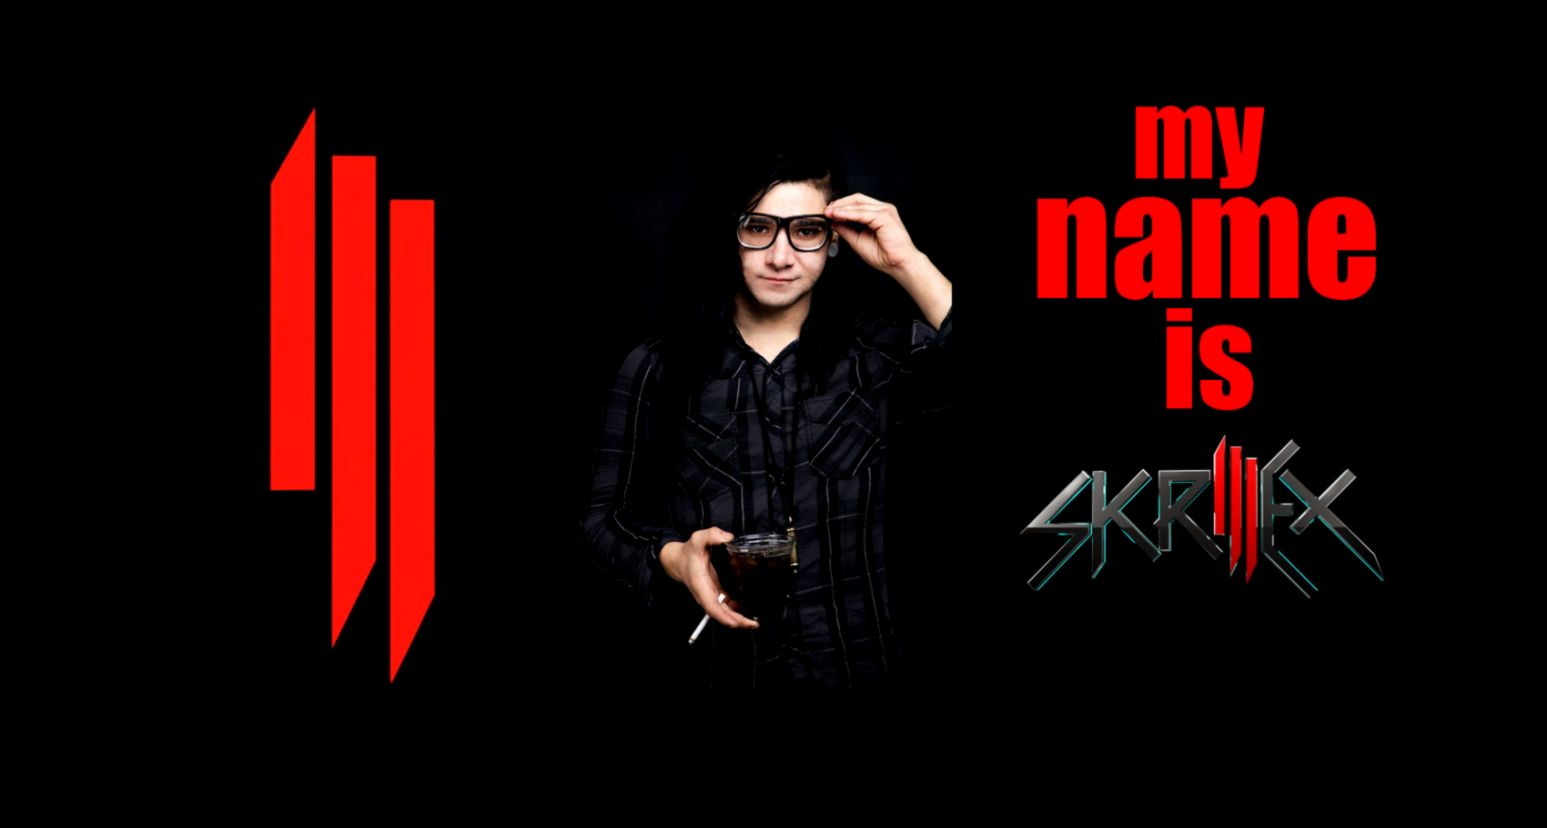 Skrillex Wallpaper and Background Image 1700x900 ID224314